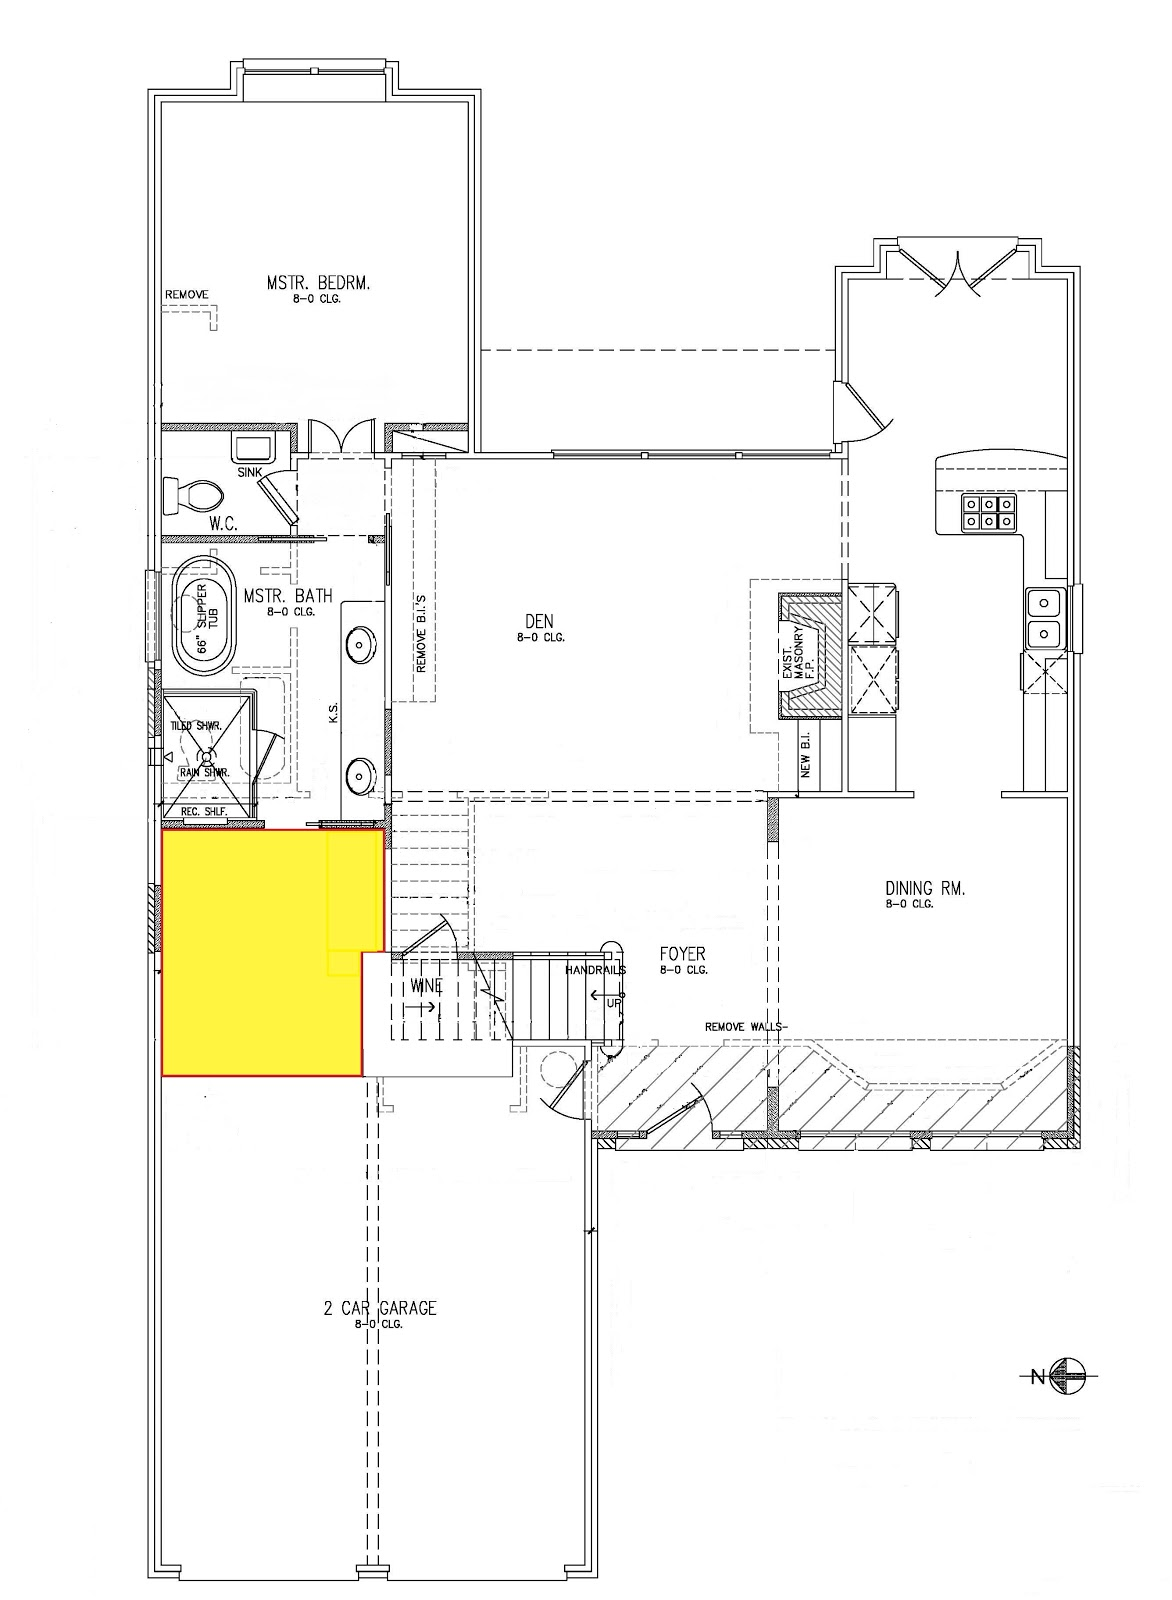 renovation rehab master plan for the master closet walk in closet floor plan sizes in home plans ideas picture